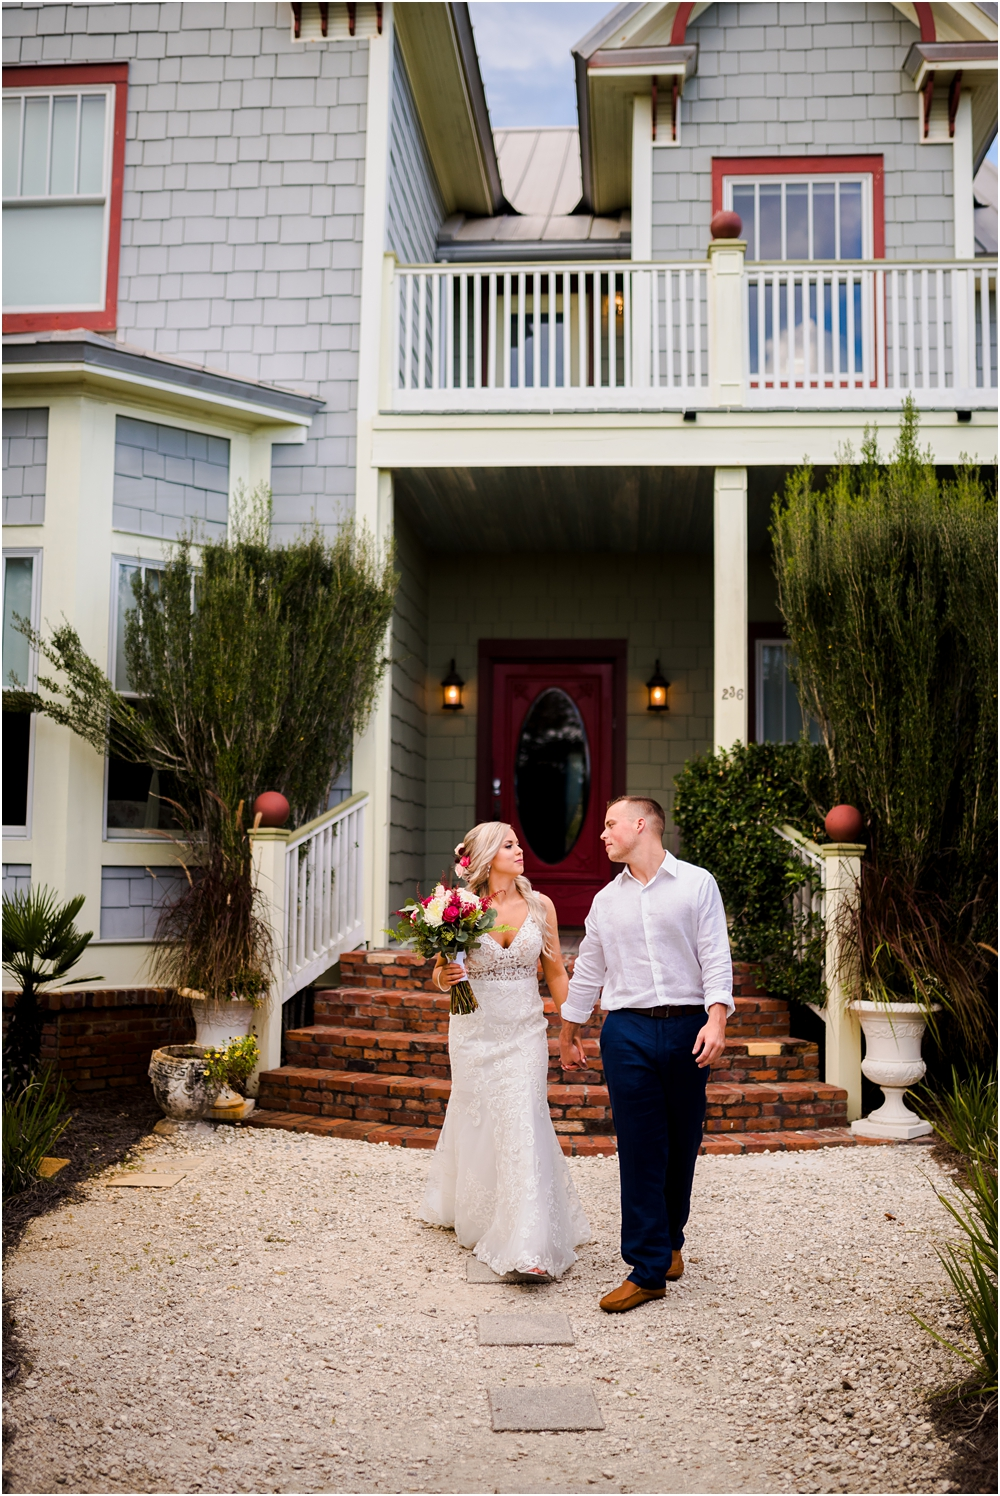 mcglothlin-wedding-kiersten-stevenson-photography-30a-panama-city-beach-dothan-tallahassee-(58-of-145).jpg